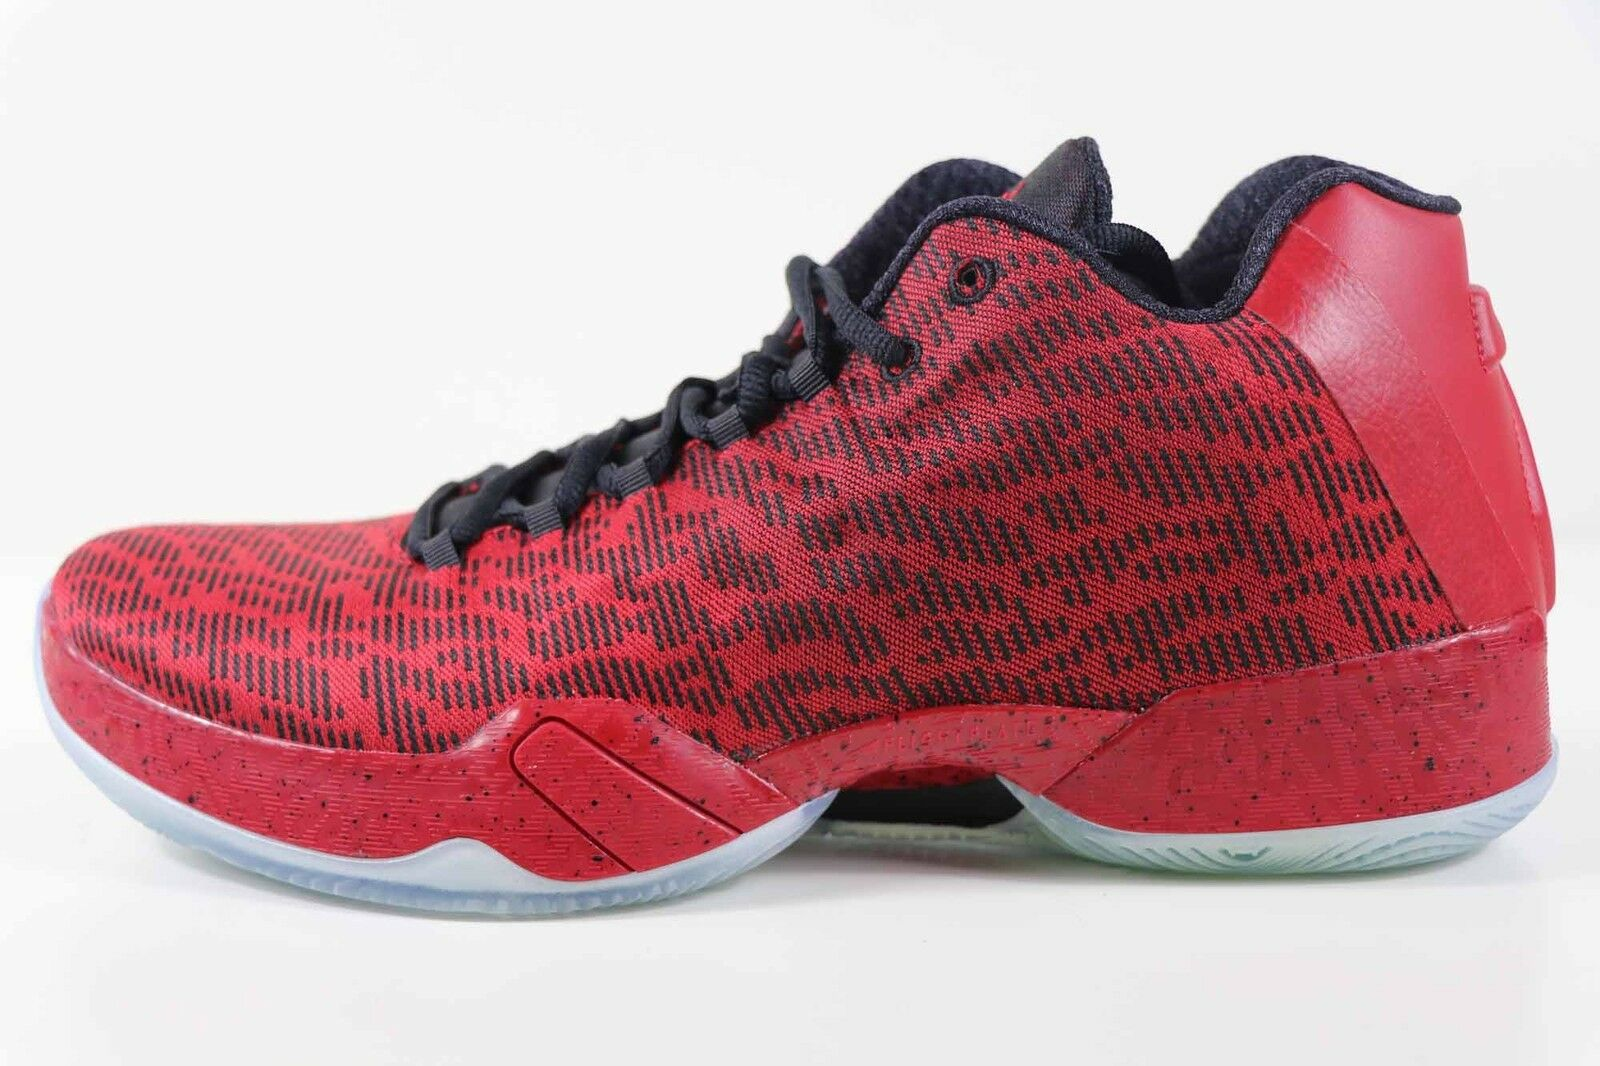 Air Jordan XX9 29 Low Jimmy Butler PE Red Black 855514 605 Size 10.5 New in Box